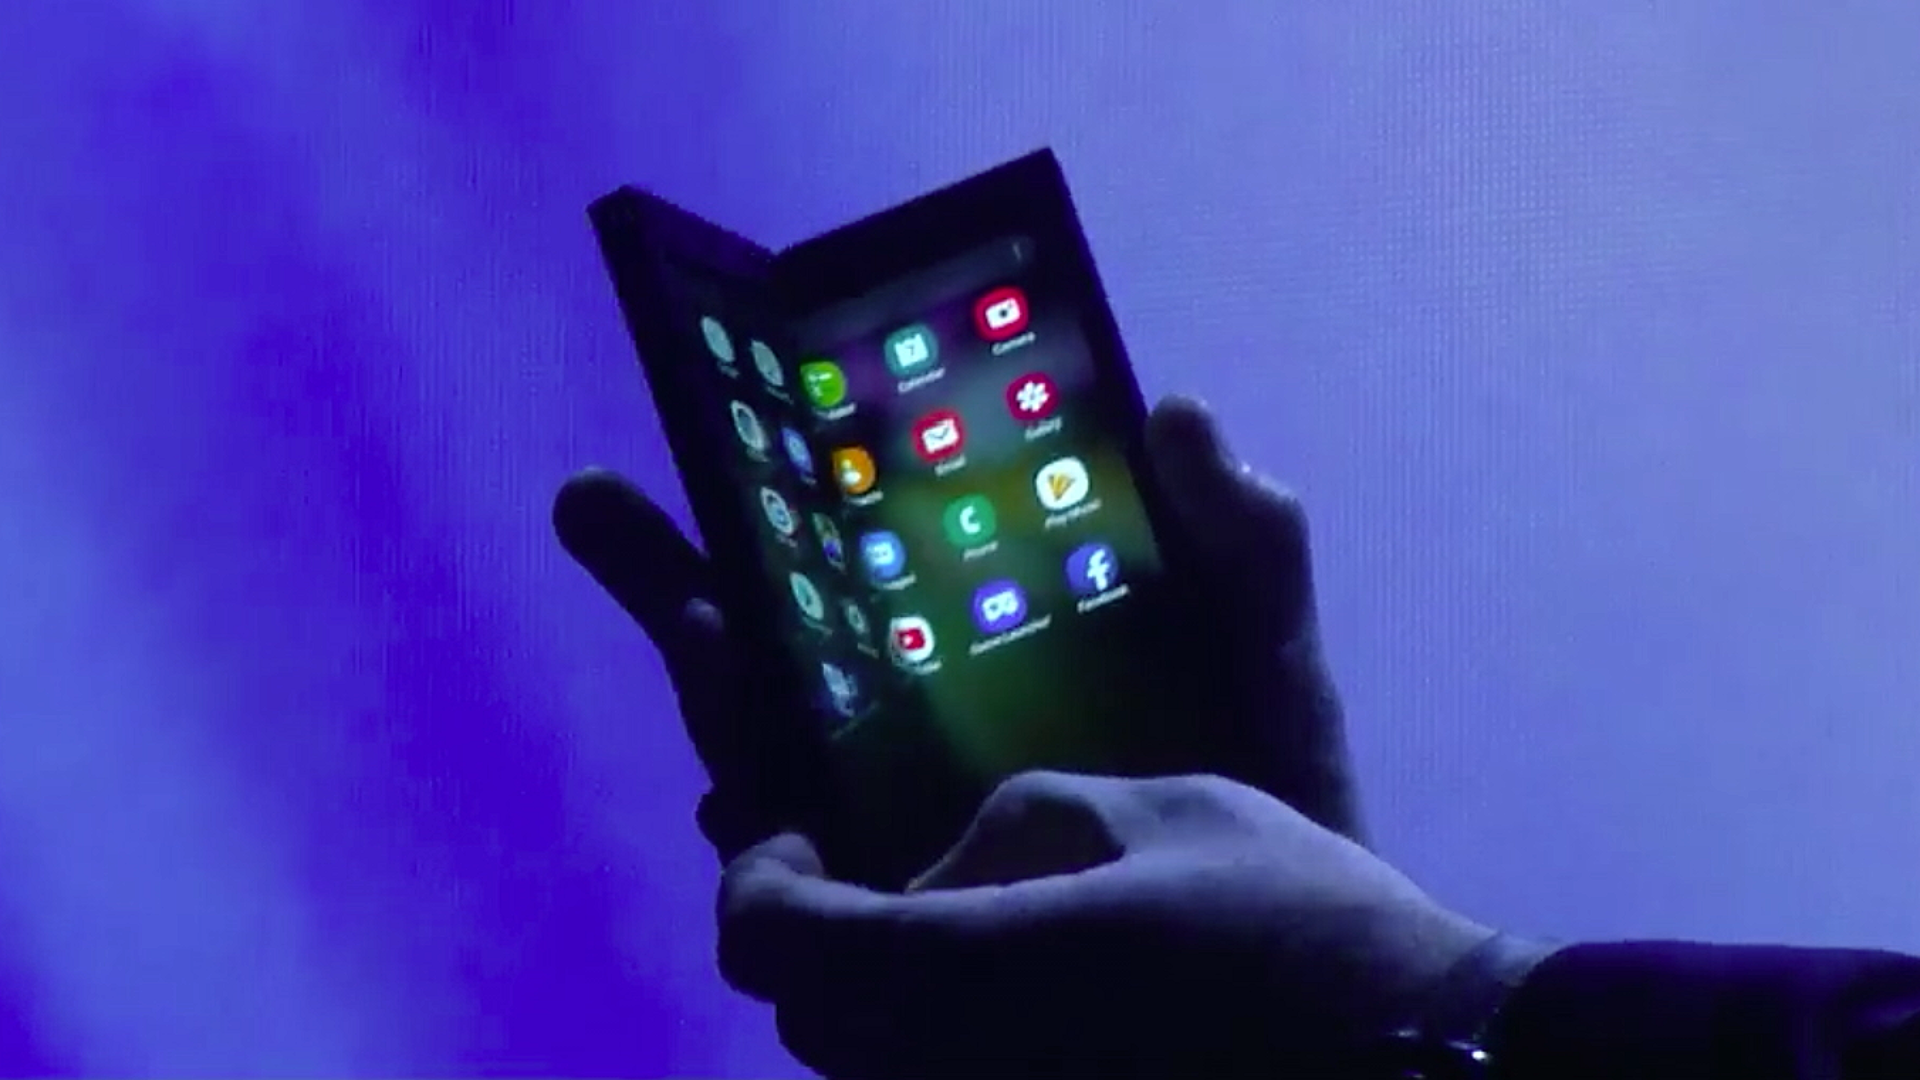 Samsung's Foldable Smartphone: Hints to launch at an Event on Feb 20